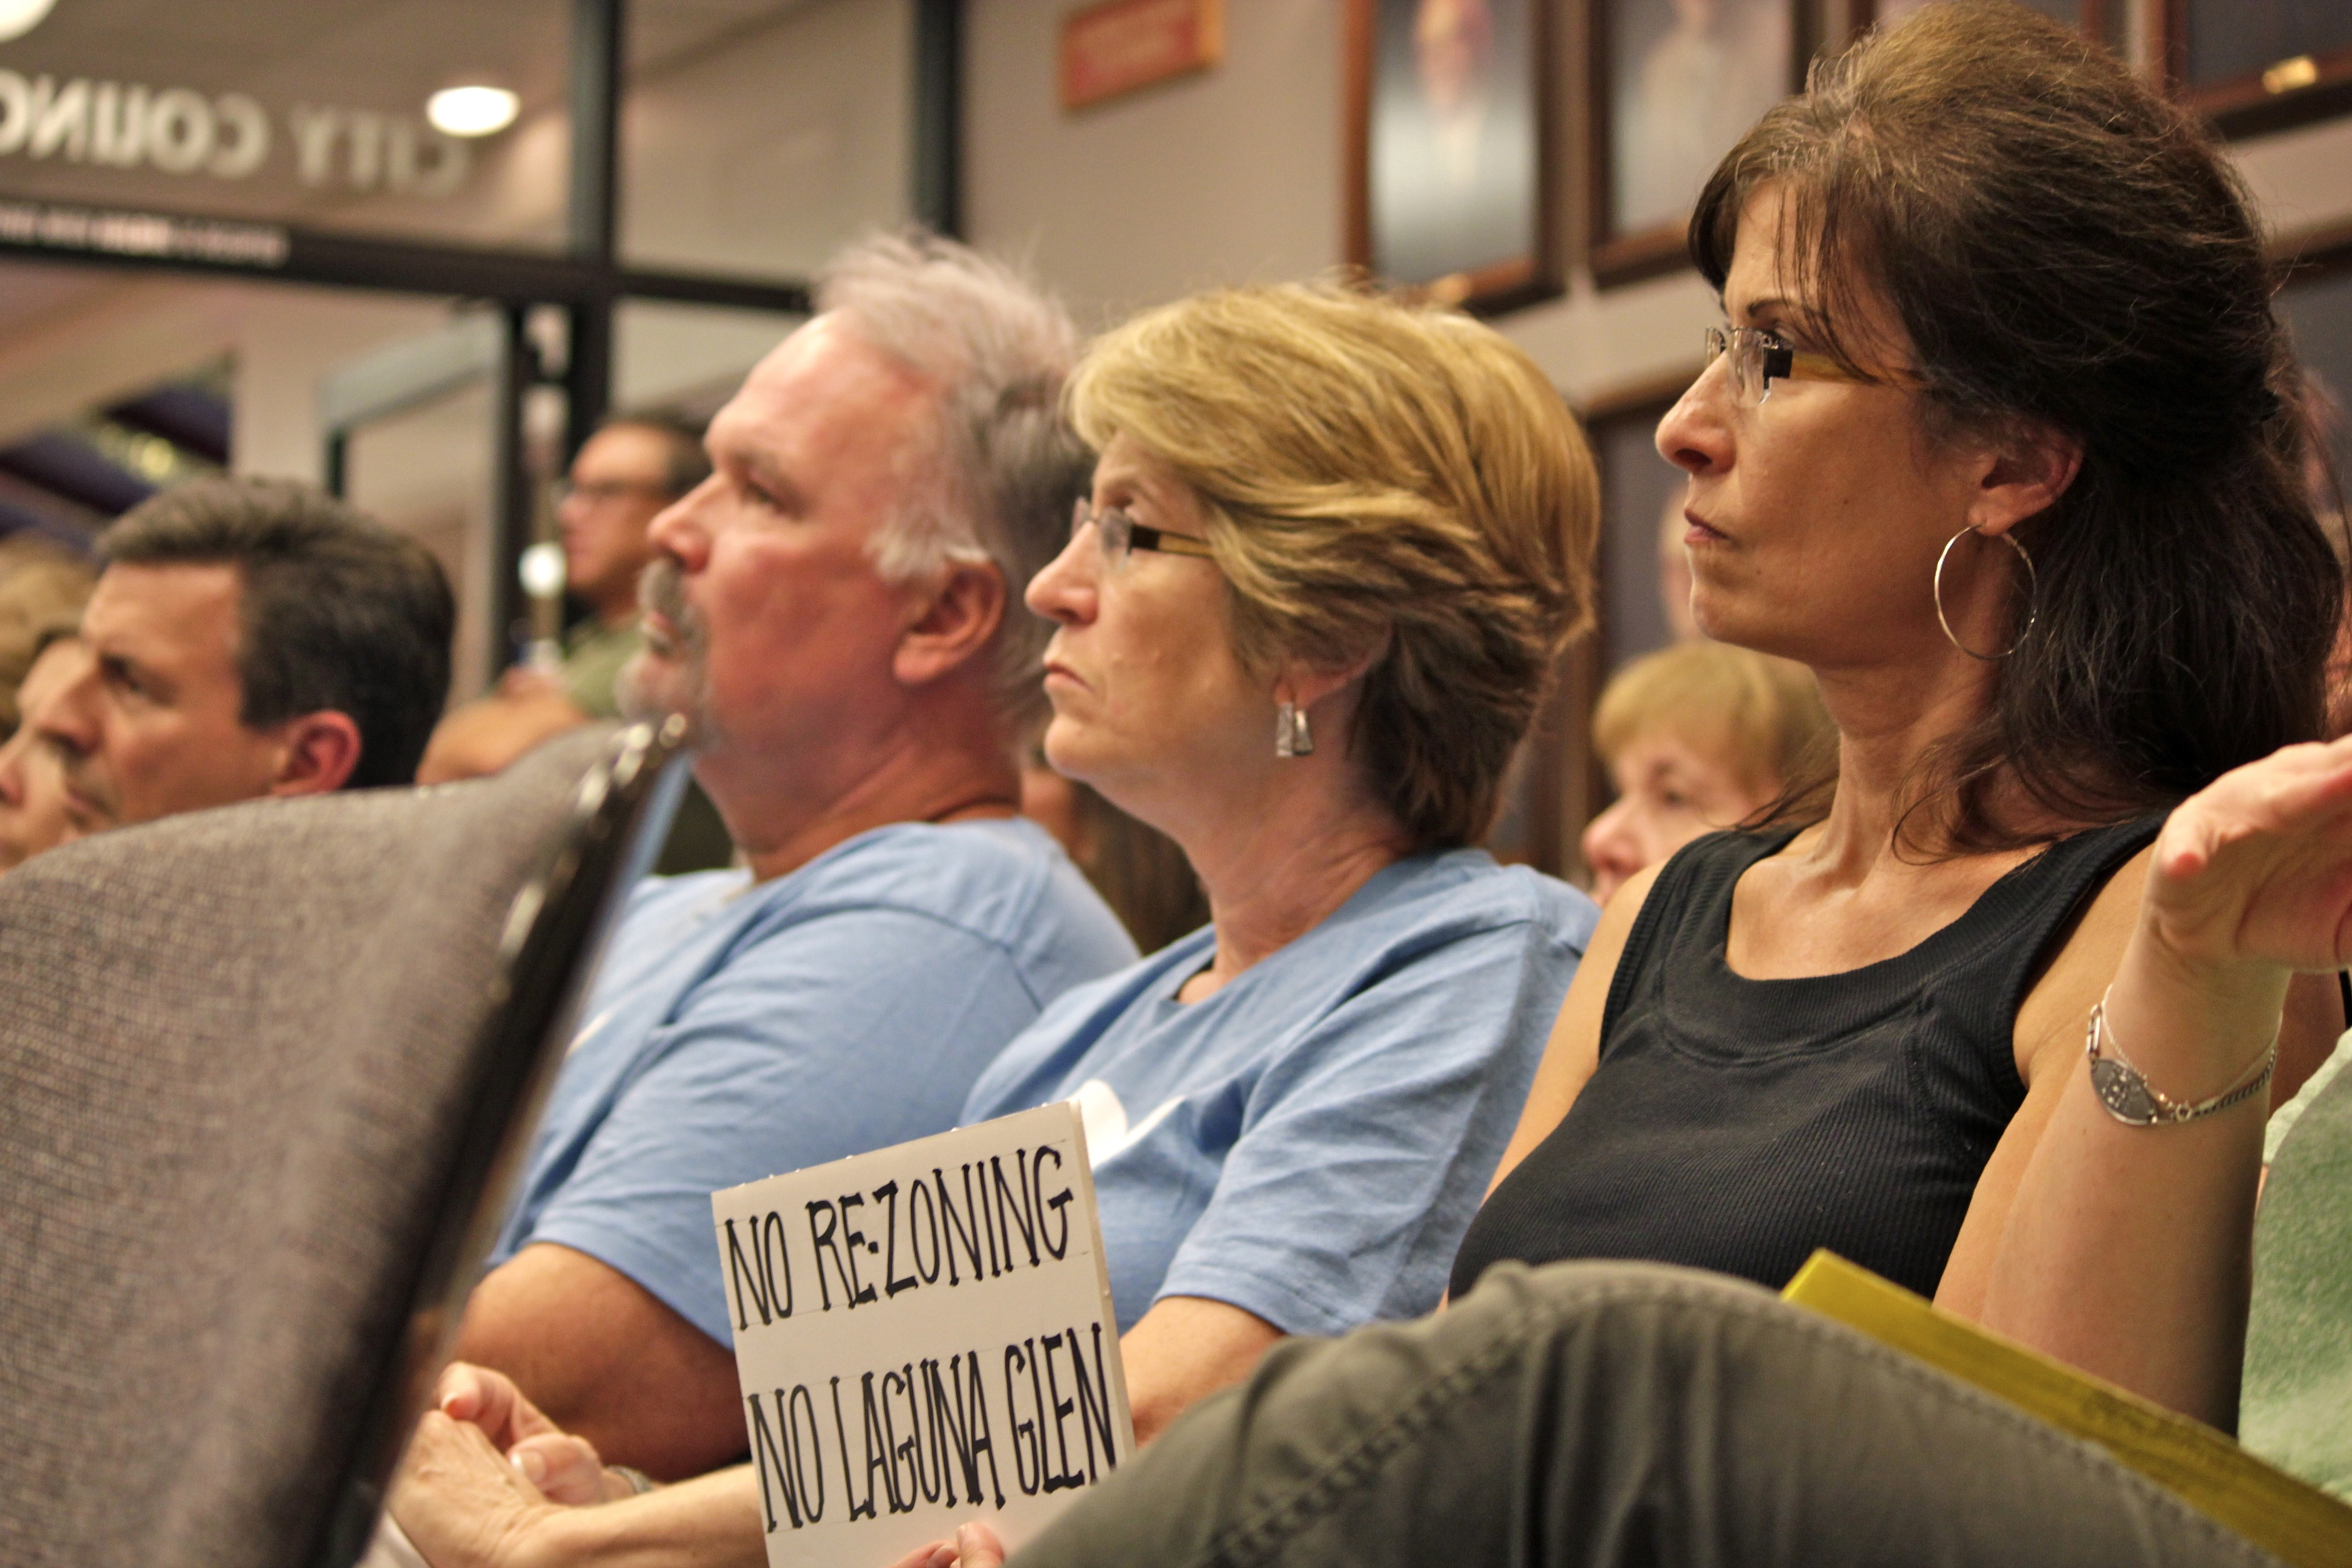 San Juan Capistrano resident Shelley Bachelder holds a sign in protest against Spieker Senior Development's Laguna Glen proposal. Photo: Brian Park